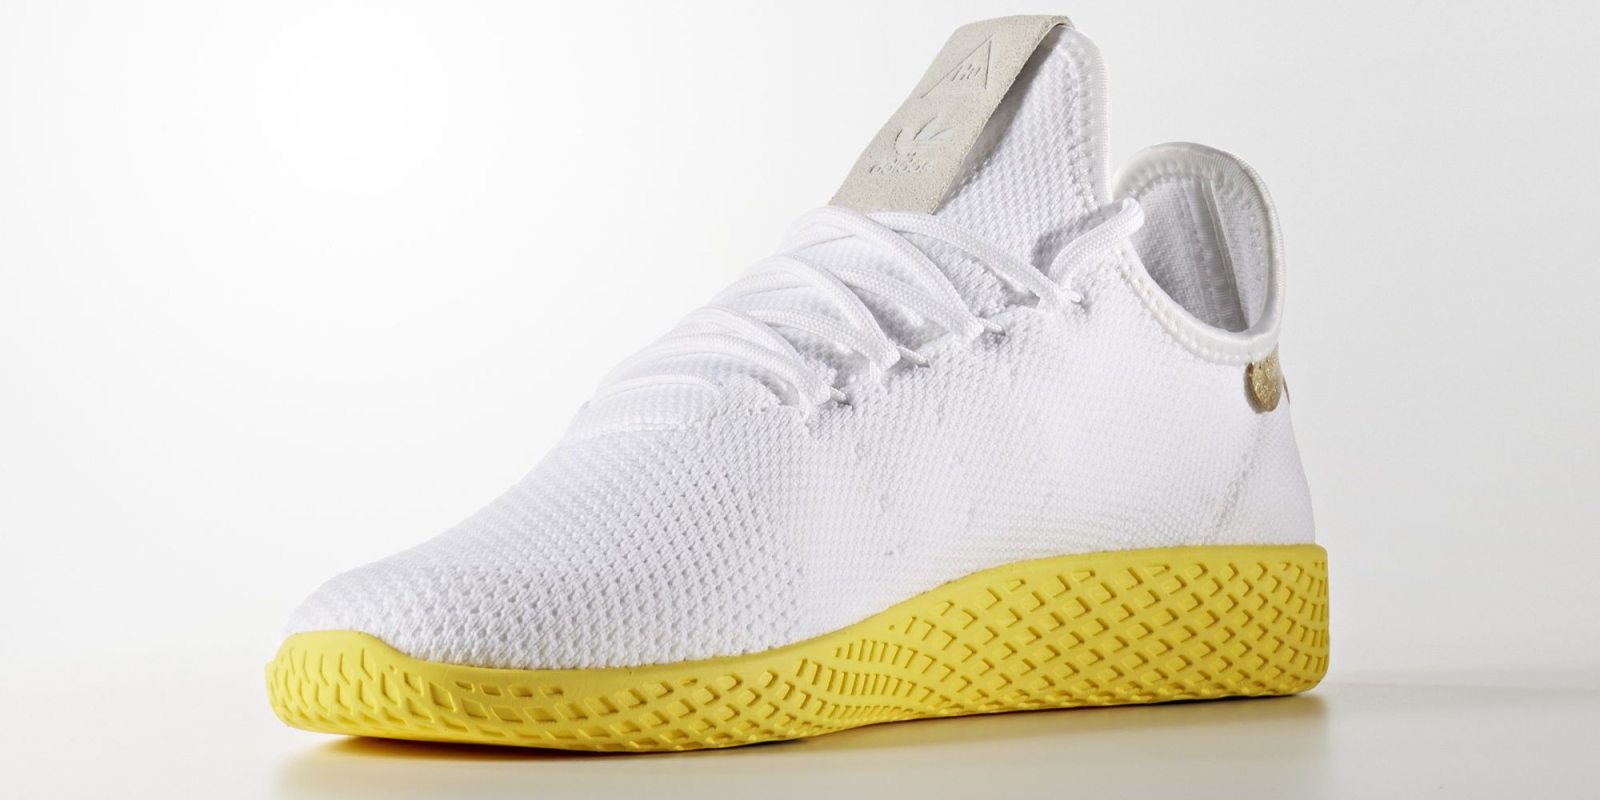 39f5471d15275 Pharrell x adidas bring the heat with new Tennis HU colorway - 9to5Toys